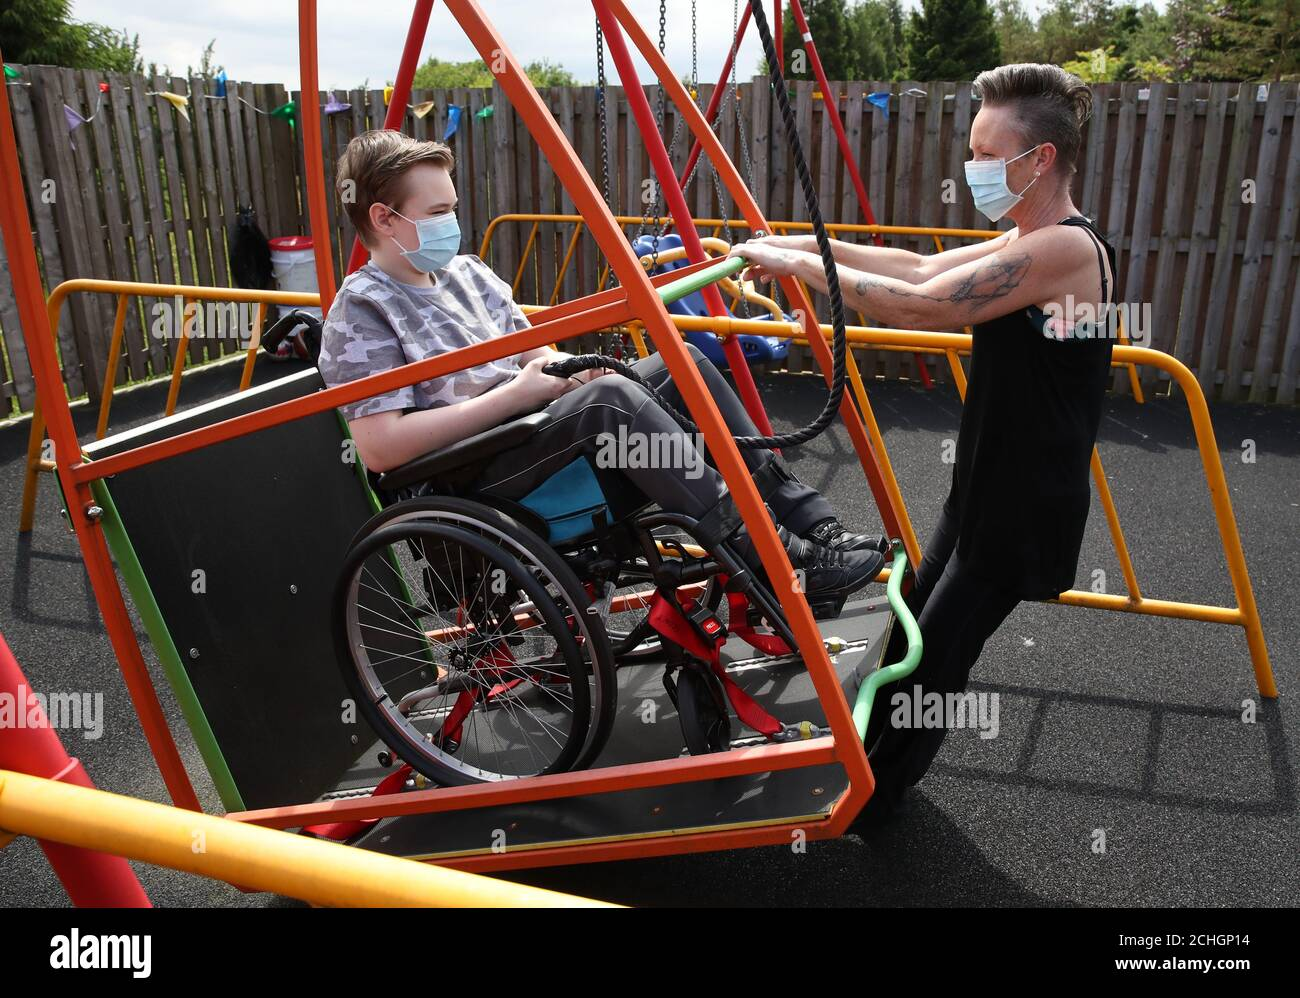 Embargoed to 0001 Monday June 22 Gregor Marshall with his mum Karen as Gregor has a ride on the wheelchair swing in the outside therapy area at the Craighalbert Centre. Coronavirus adaptations have been installed at the Scottish Centre for Children with Motor Impairments, Craighalbert Centre, Cumbernauld, as Scotland continues gradually lifting coronavirus lockdown measures. Stock Photo